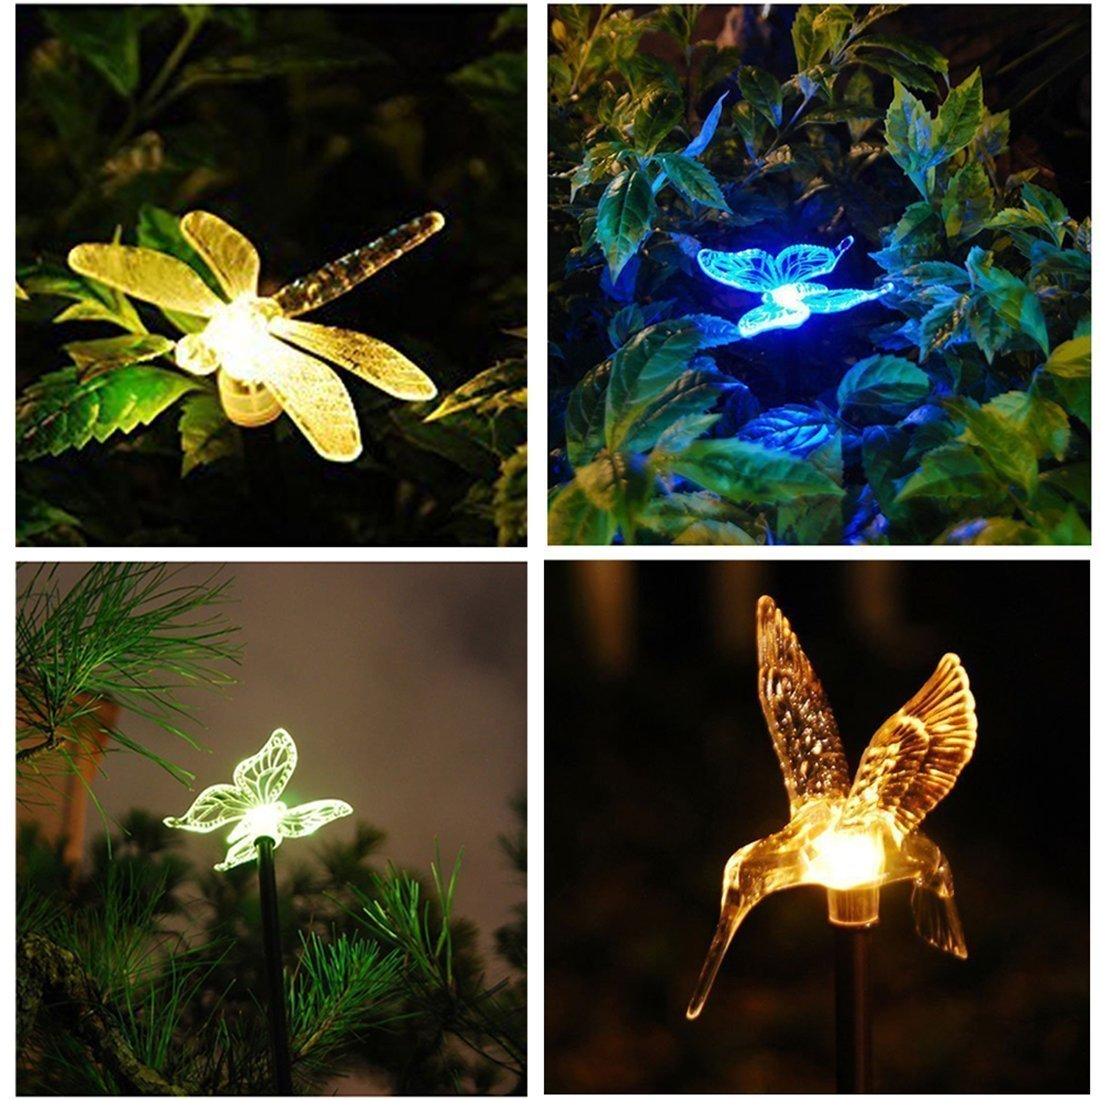 Select A Solar Light Hue That Would Make You Happy And Comfortable